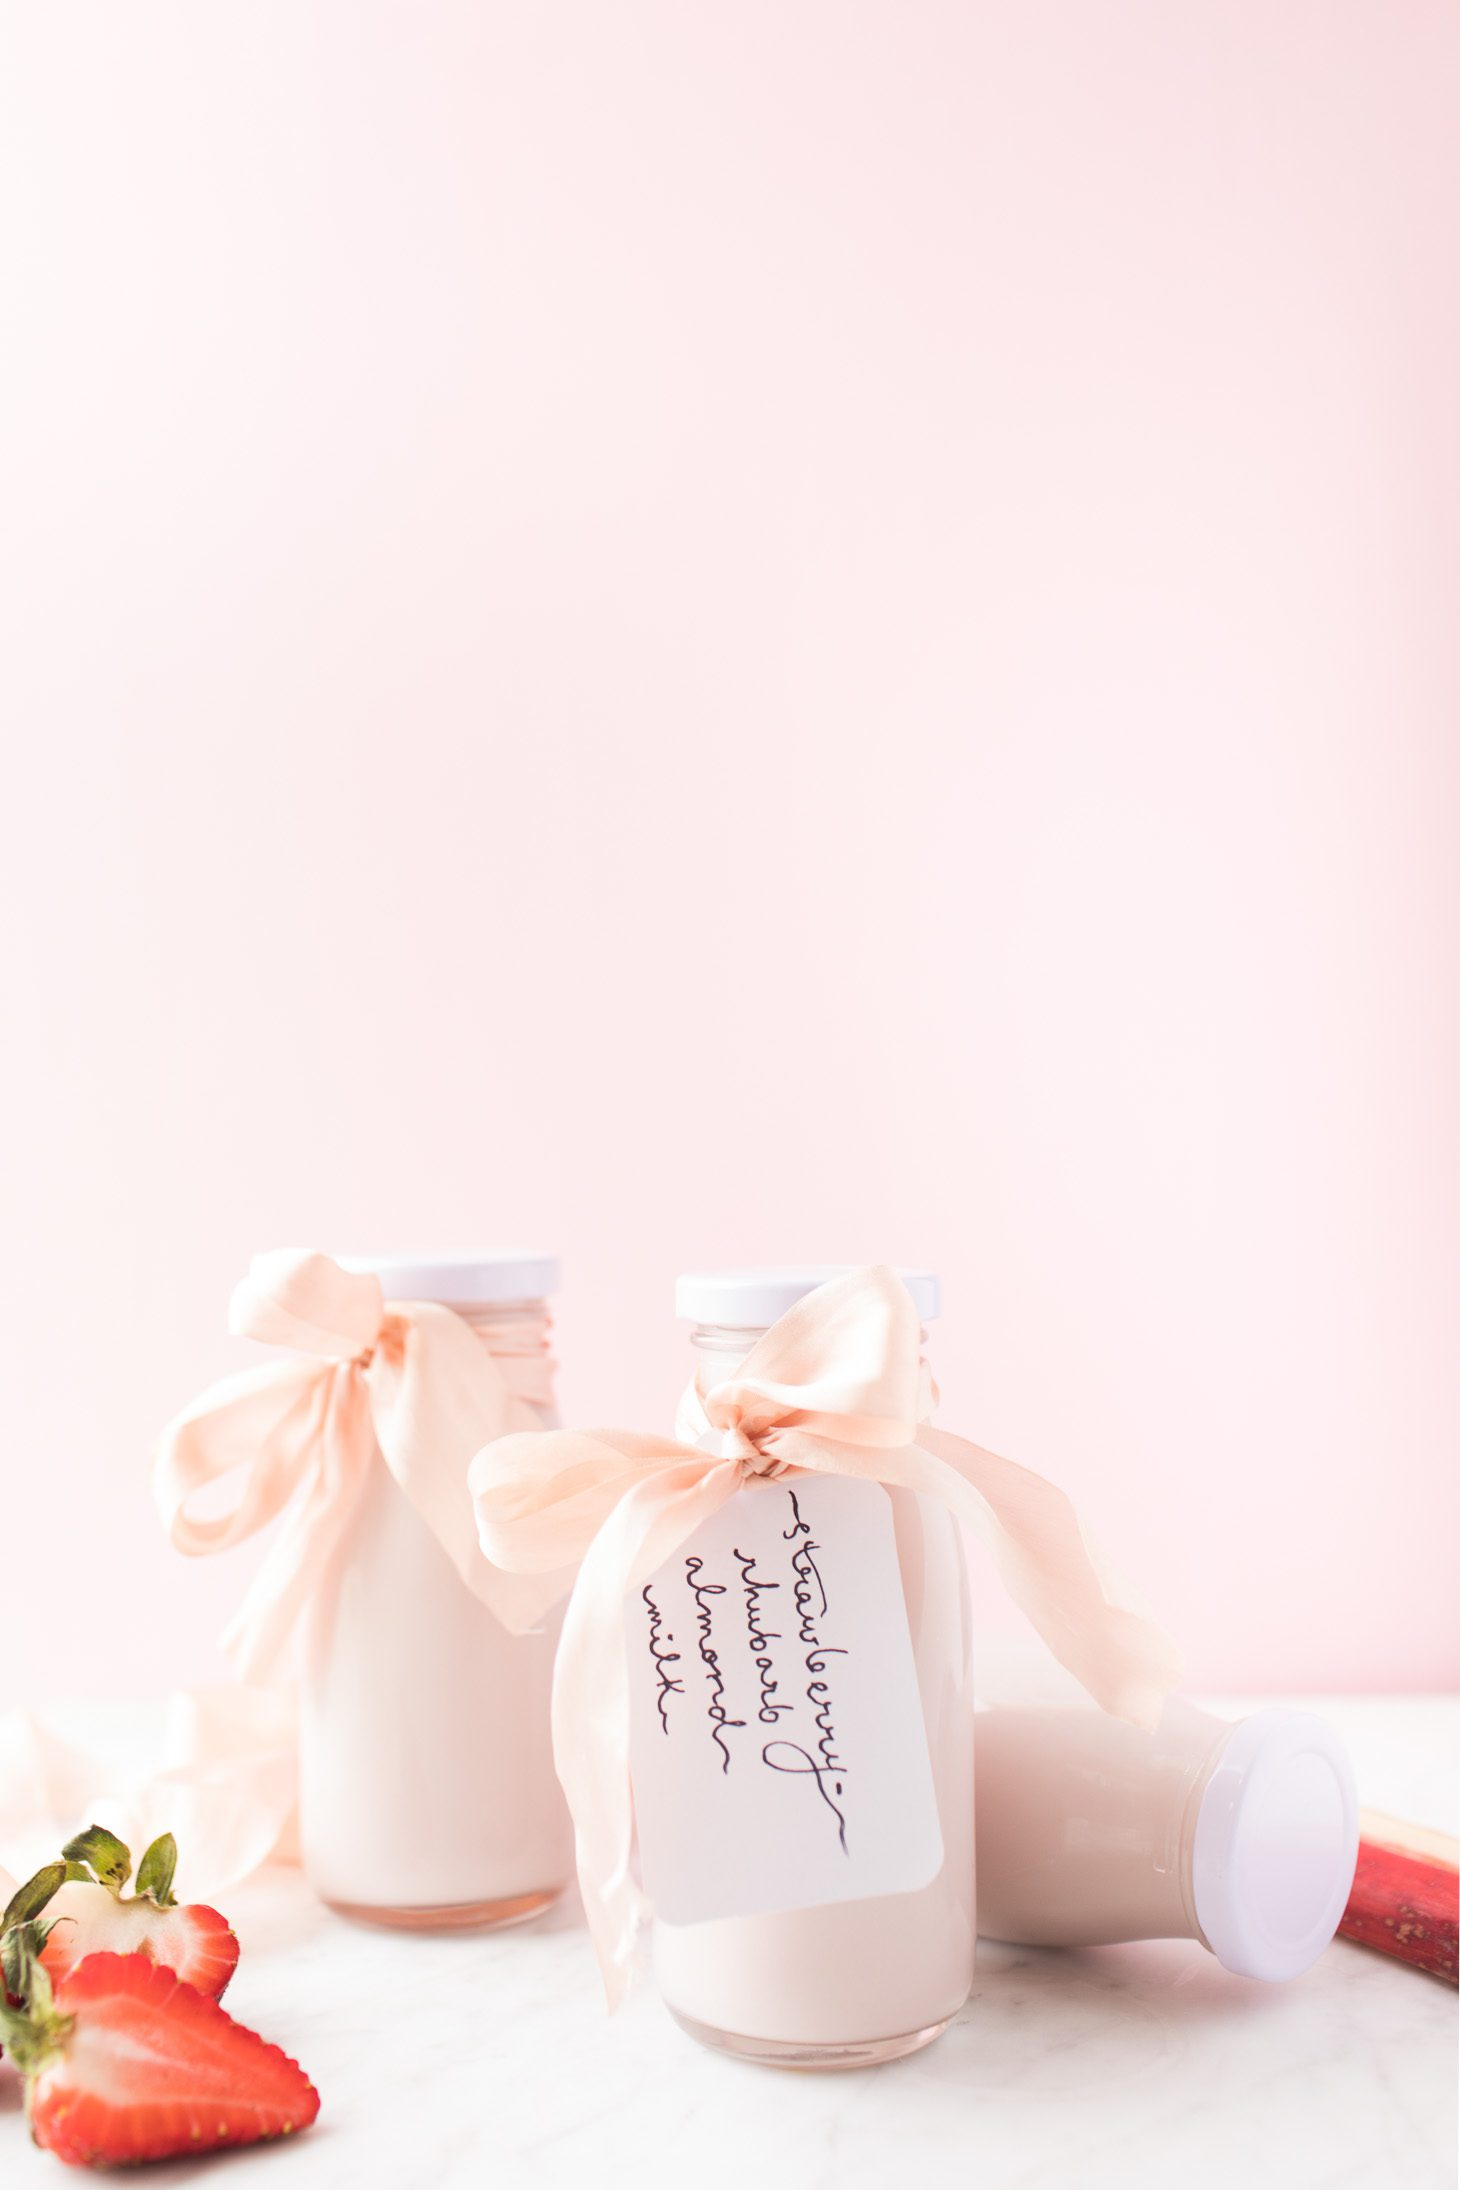 Jillian Harris Strawberry Rhubarb Almond Milk